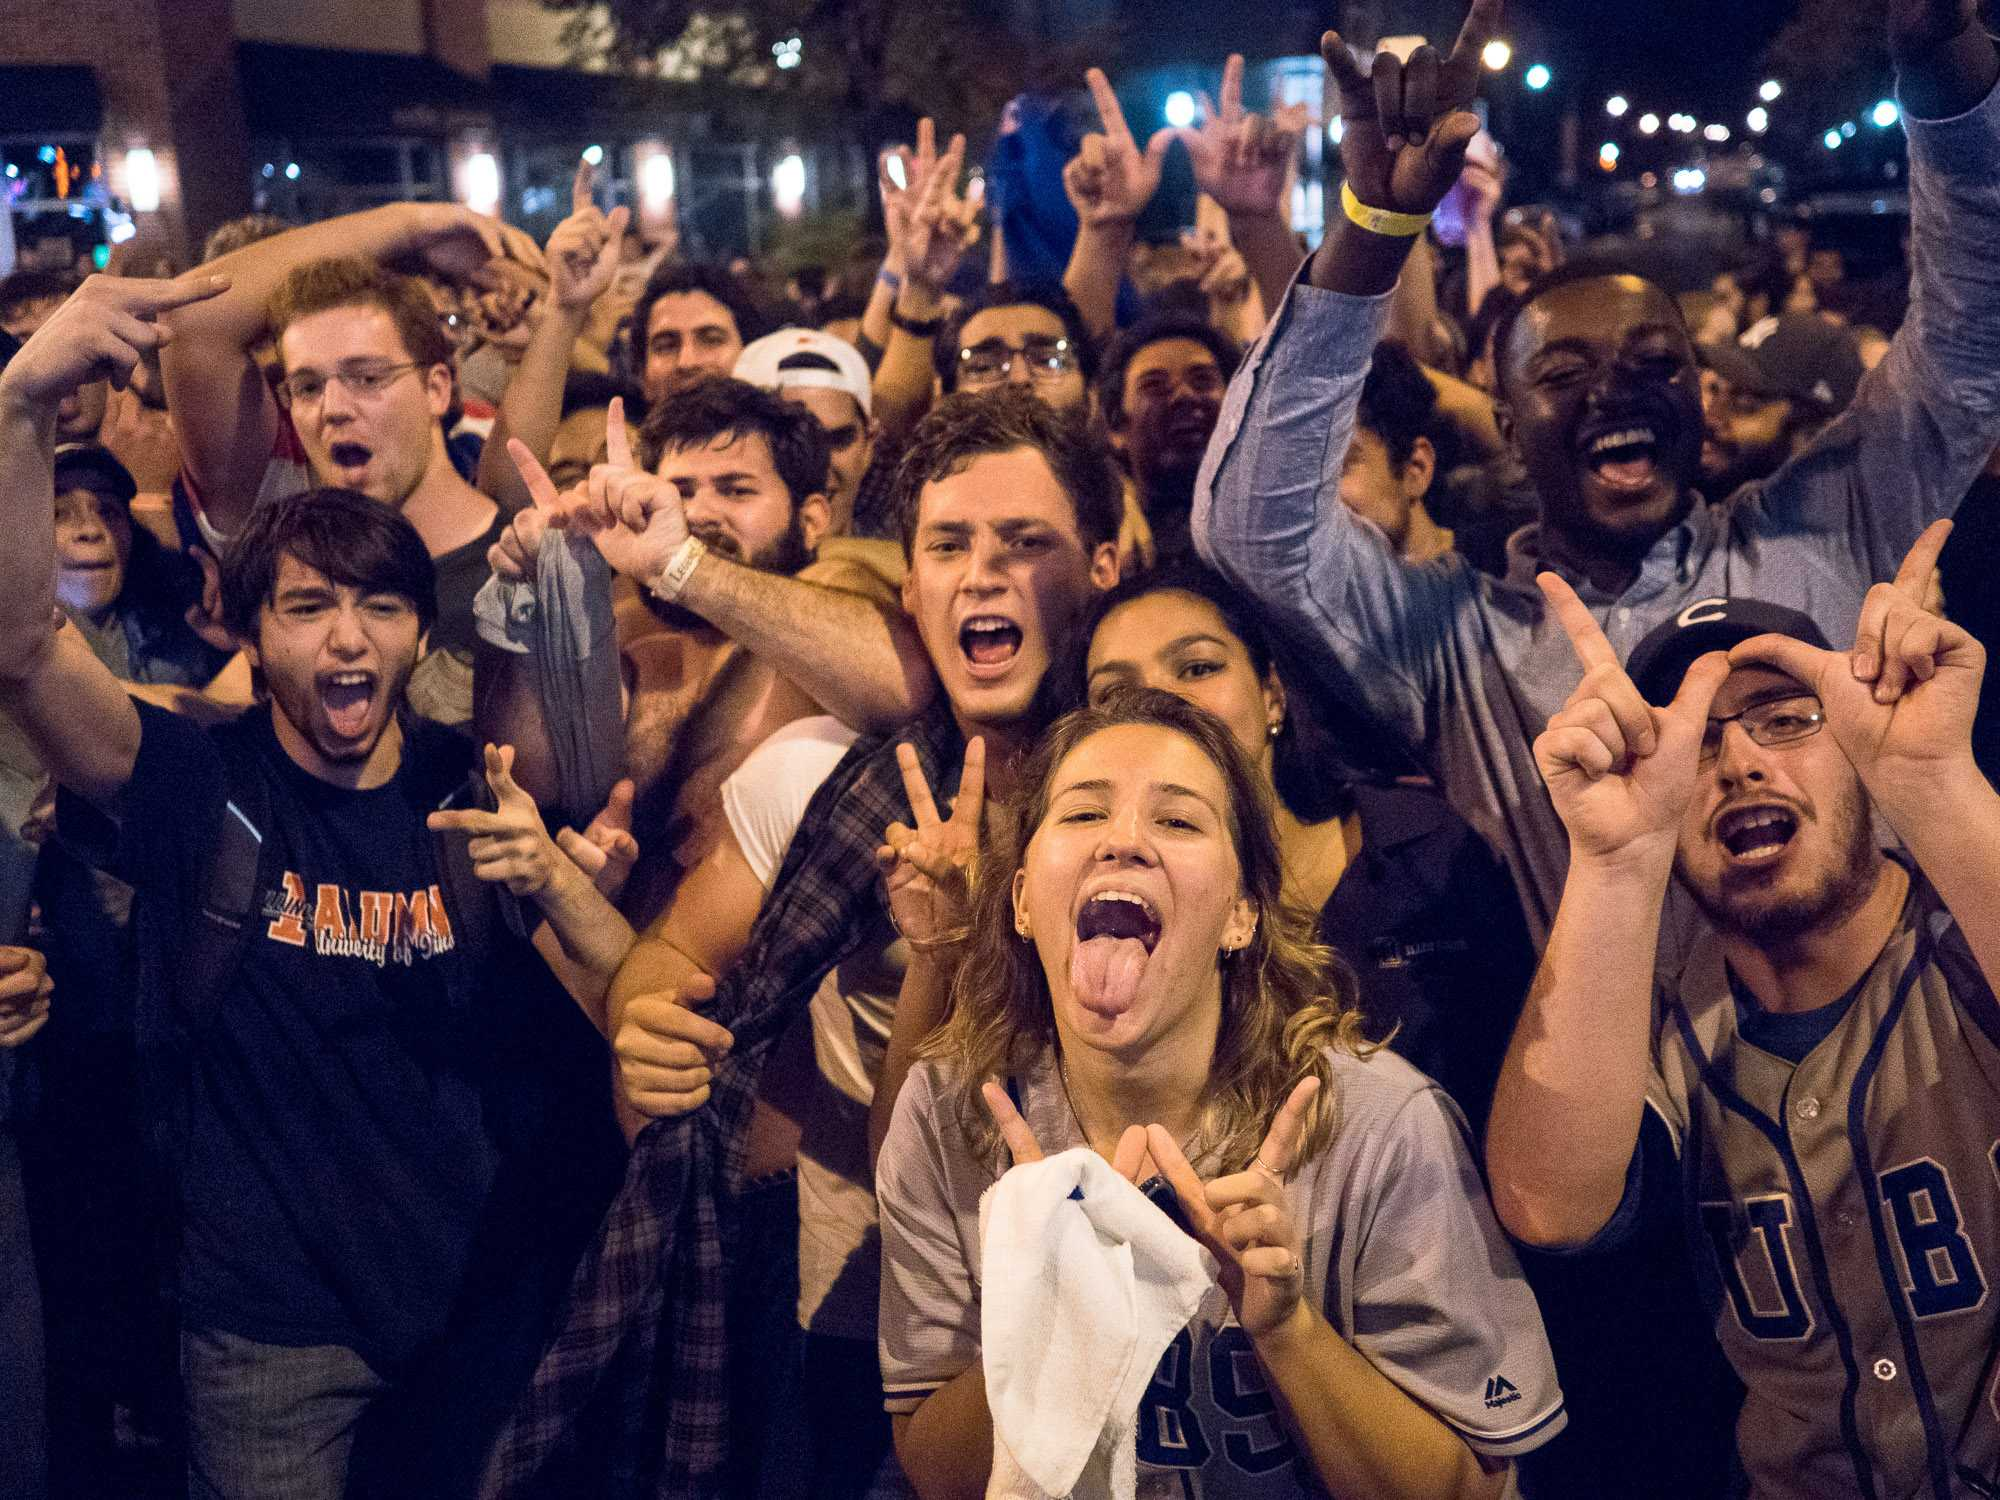 Students celebrate after the Cubs win Game 7 of the 2016 World Series against the Cleveland Indians on Wednesday, November 2 on Green Street at the University of Illinois at Urbana- Champaign.